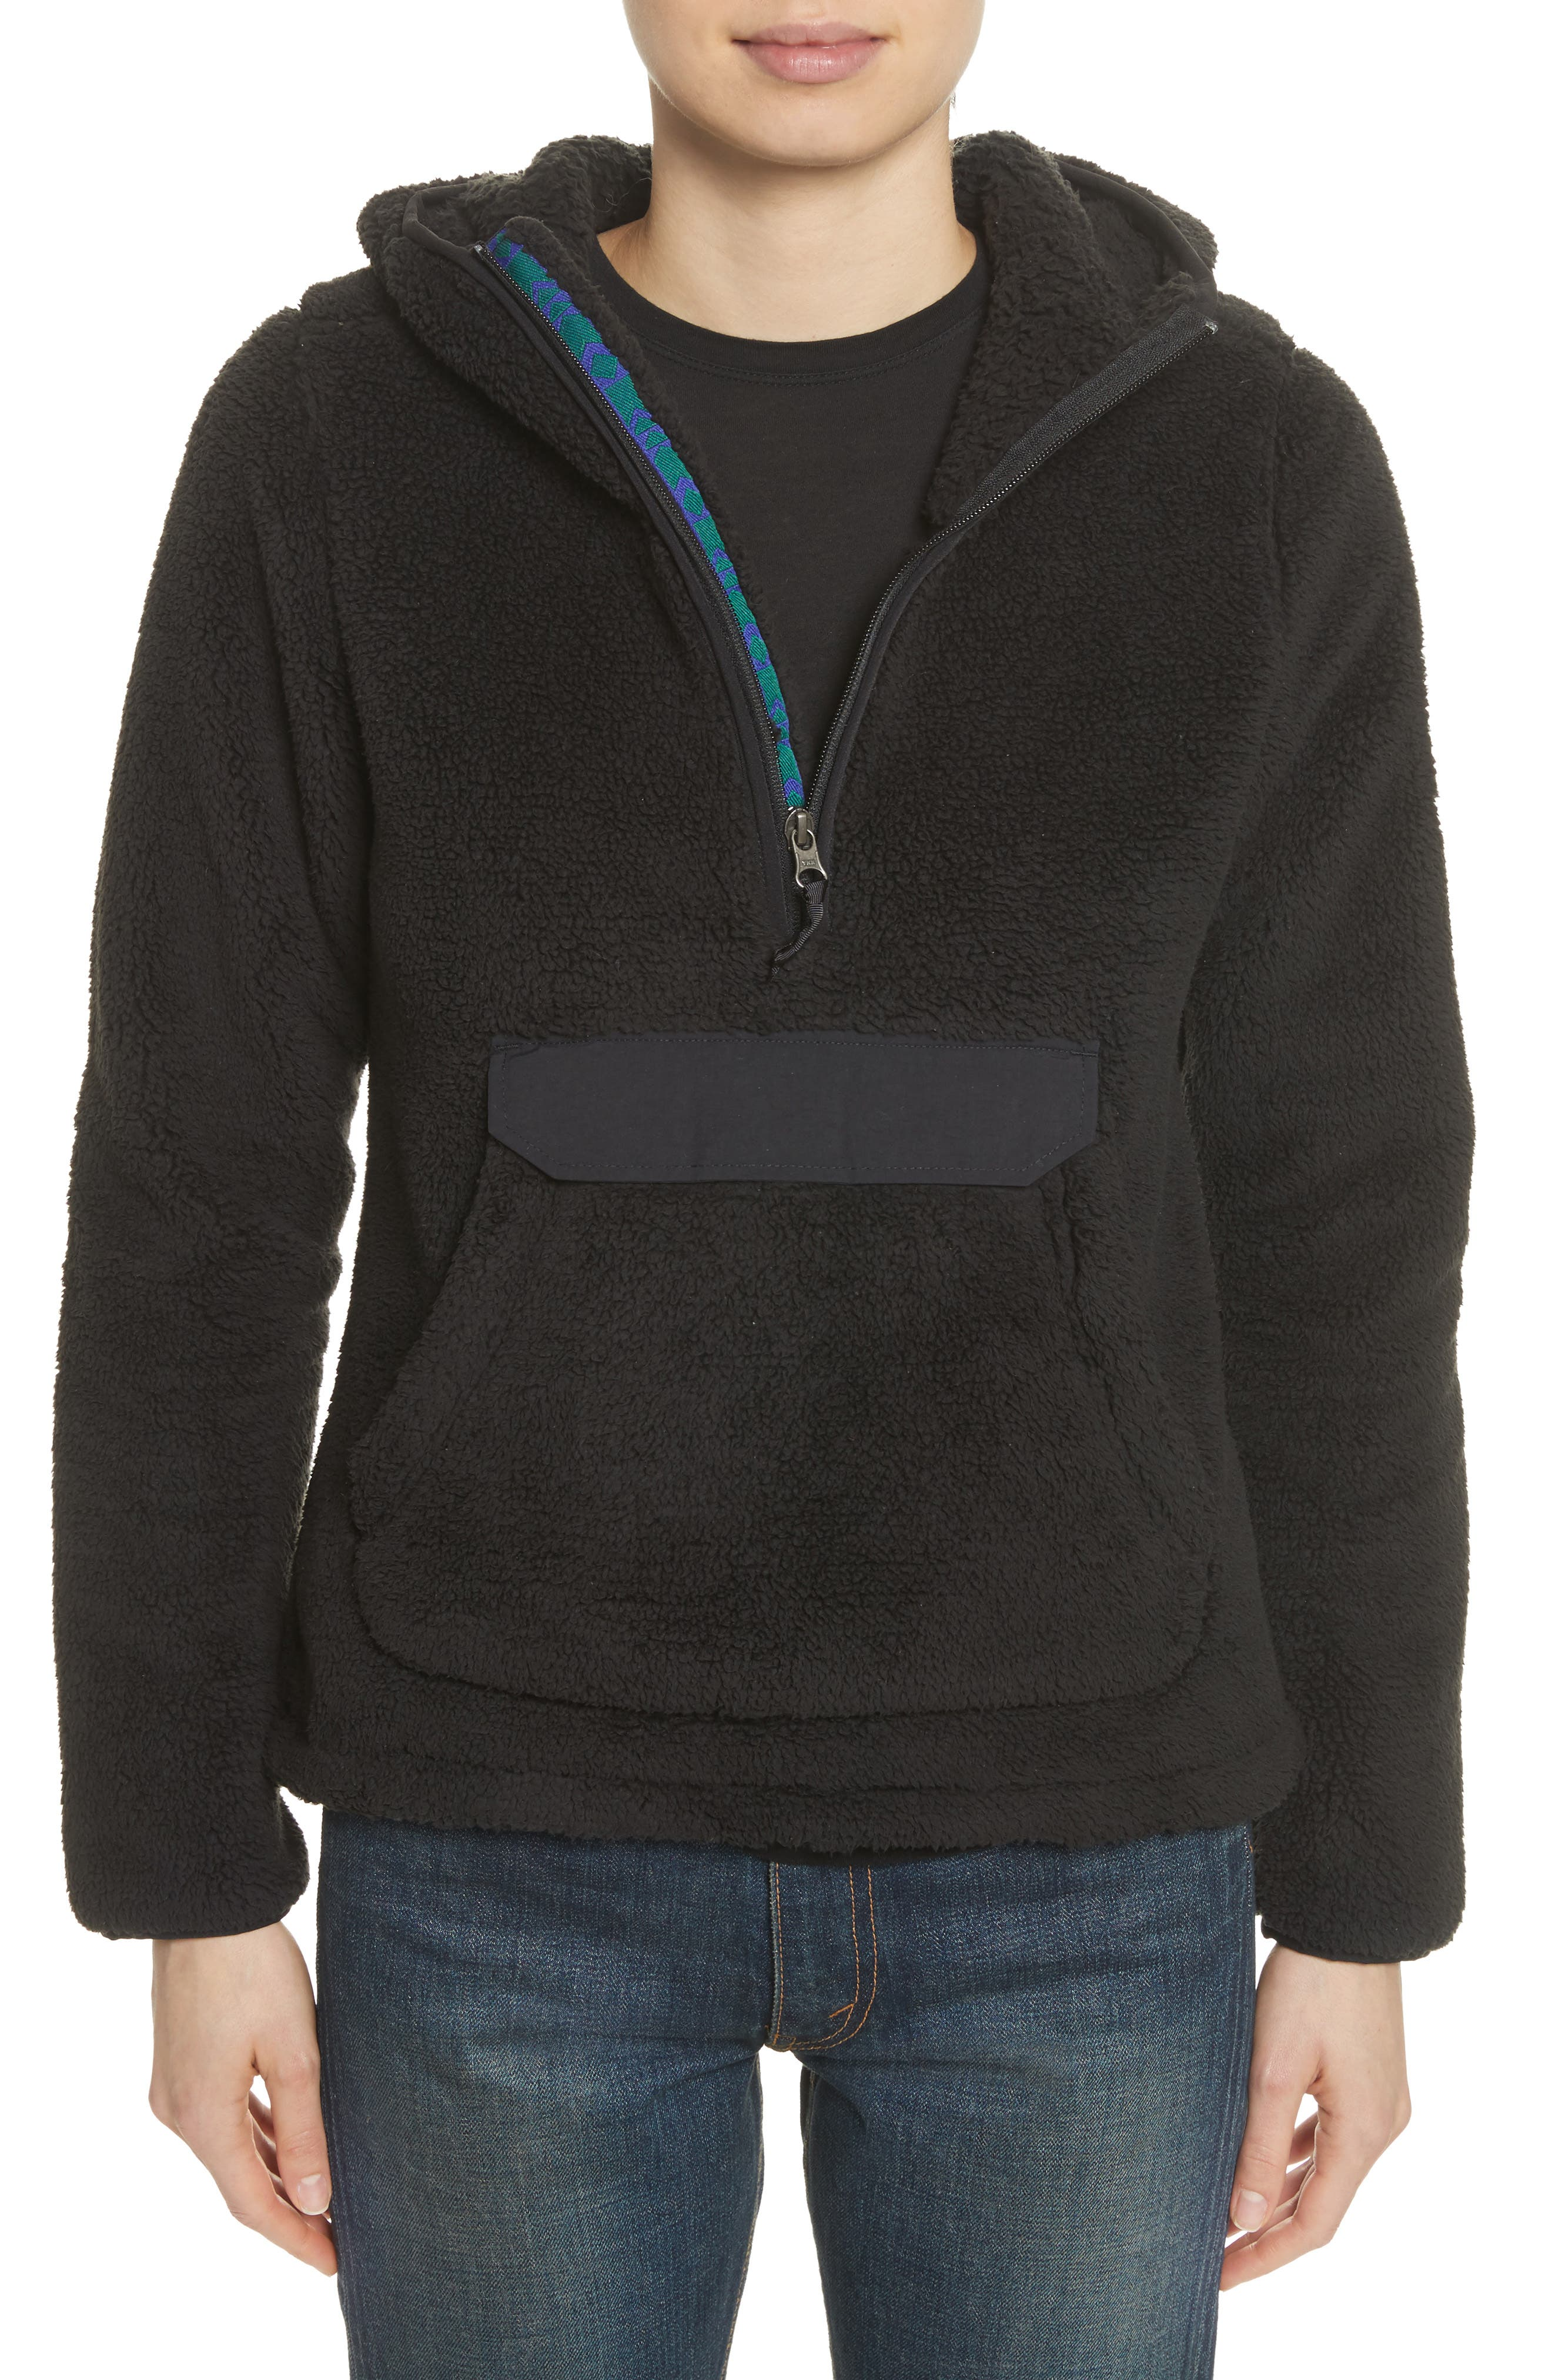 Campshire High Pile Fleece Pullover Hoodie,                             Alternate thumbnail 2, color,                             Tnf Black